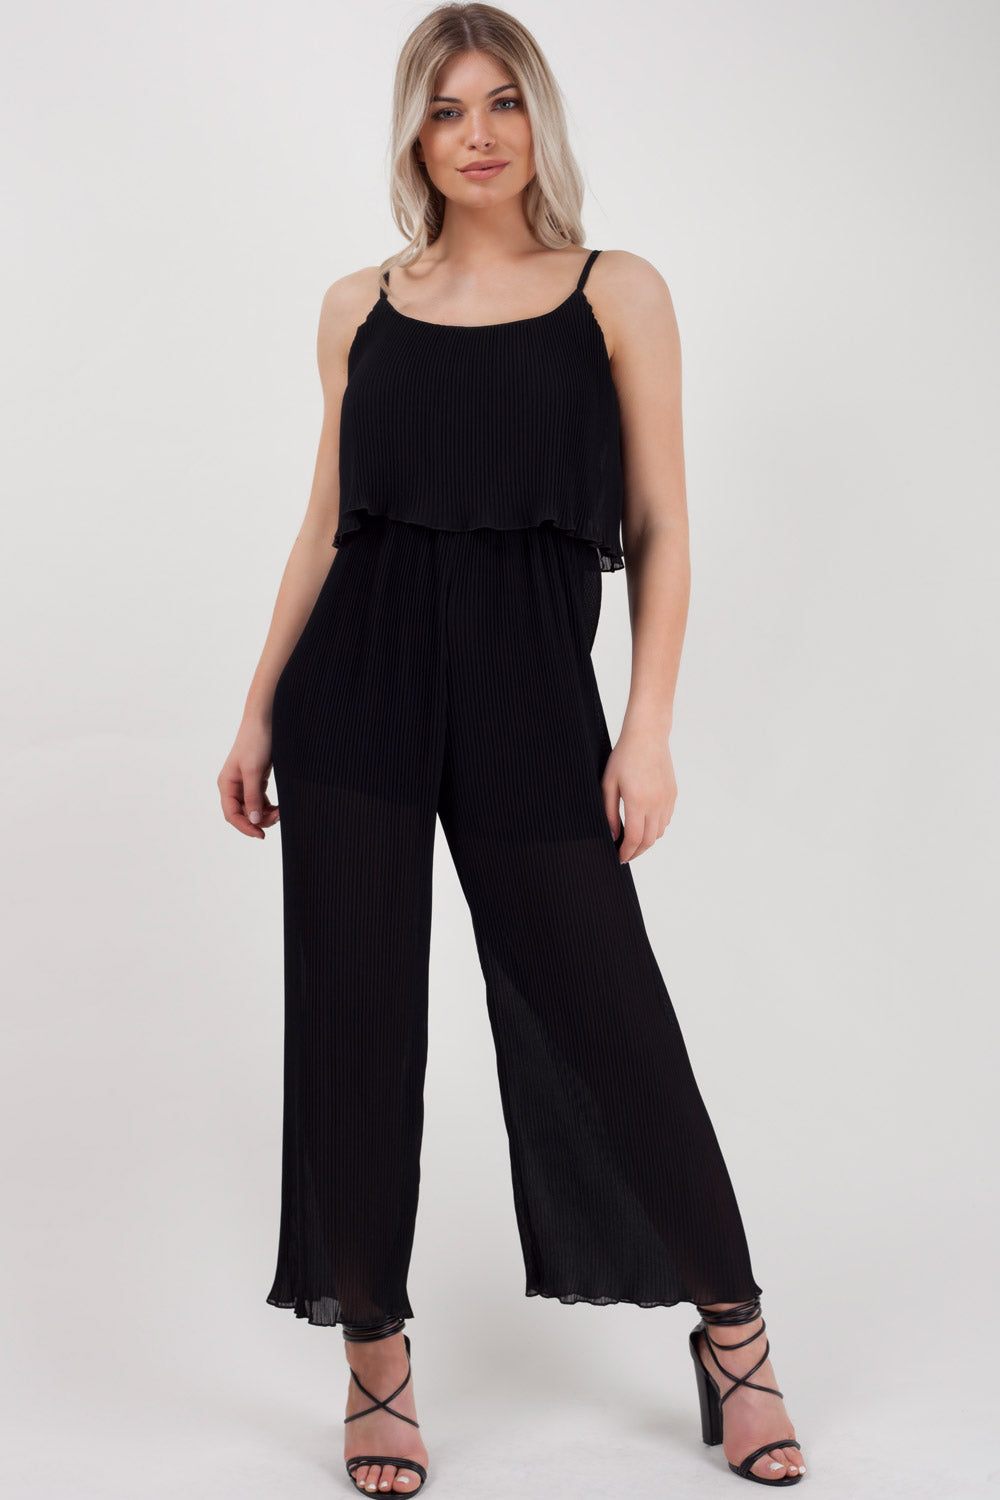 wide leg jumpsuit styledup fashion